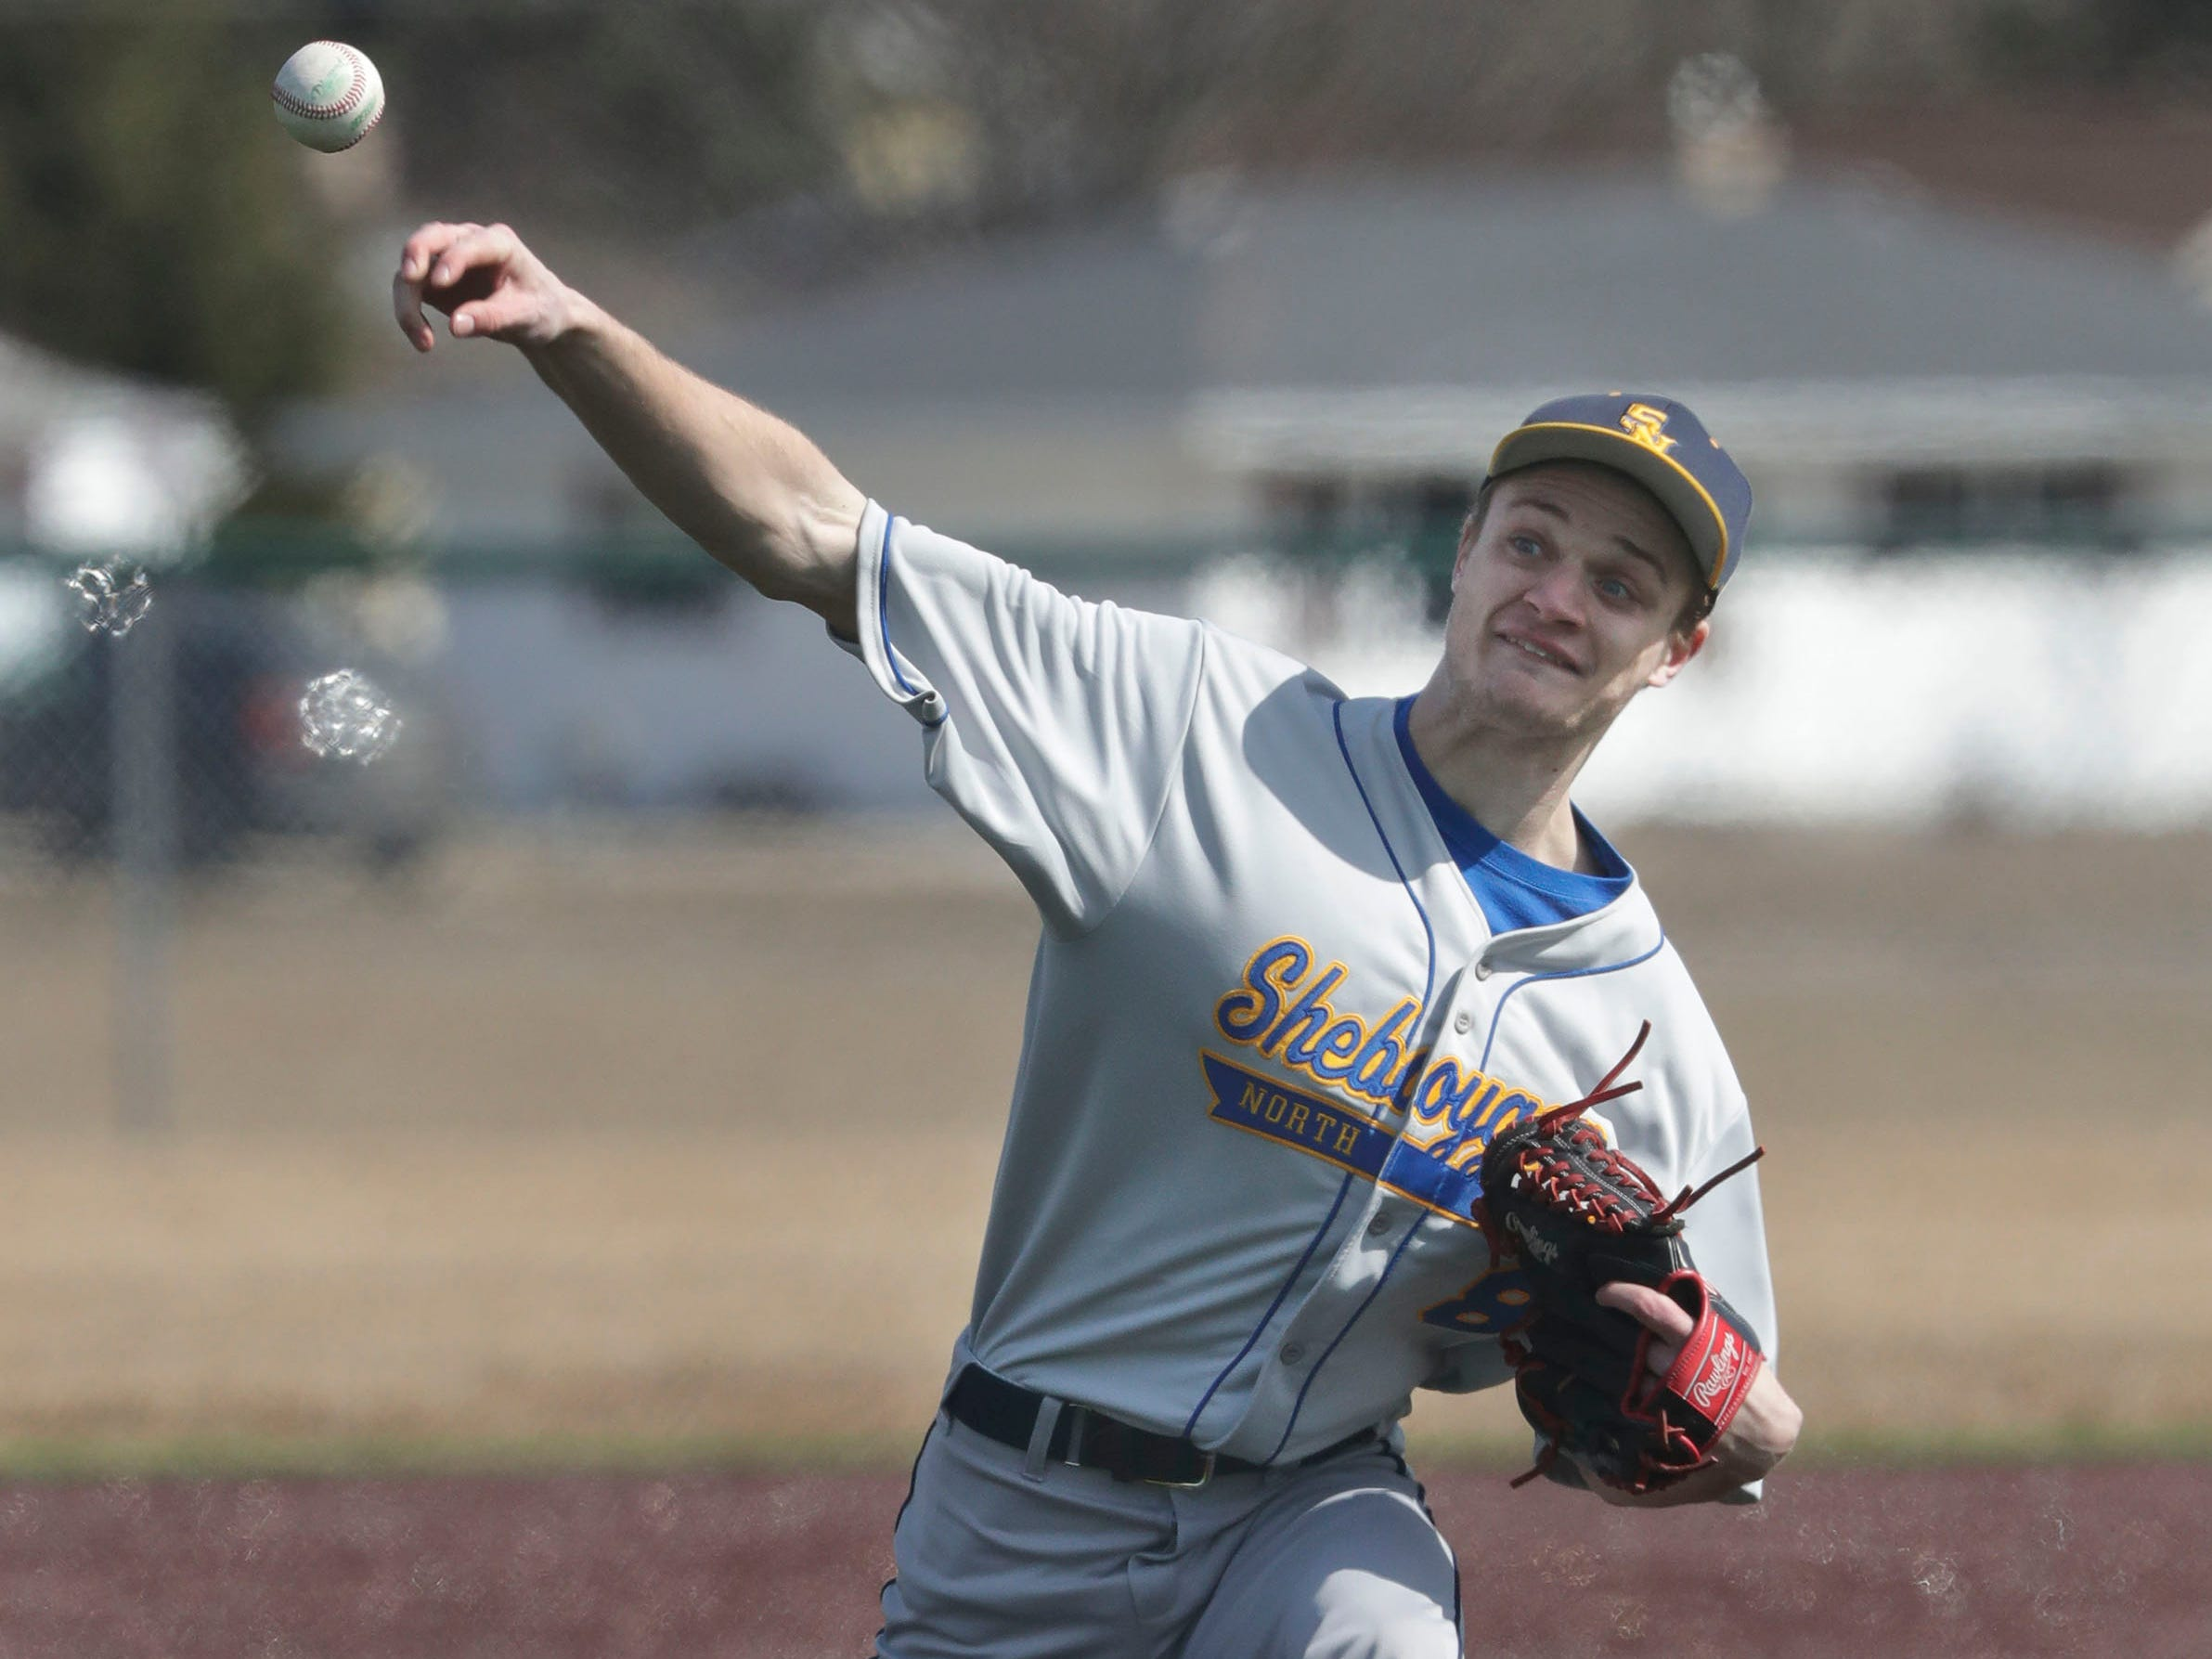 Ethan Scherg (8) winds out a pitch to Appleton North, Friday, March 29, 2019, at the Field of Dreams complex in Sheboygan, Wis.